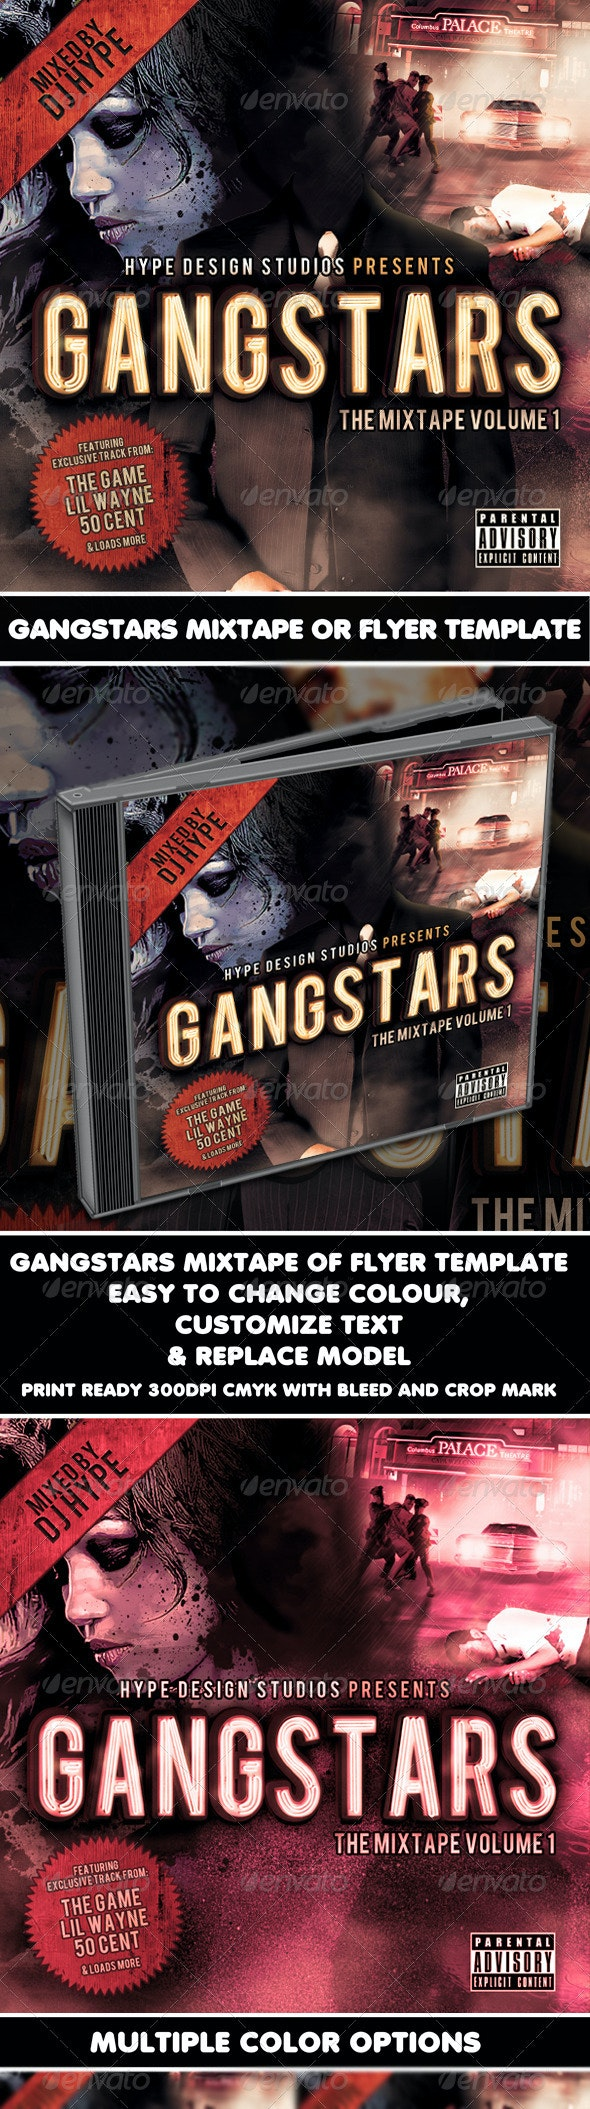 Gangstars Mixtape or Flyer Template - CD & DVD Artwork Print Templates